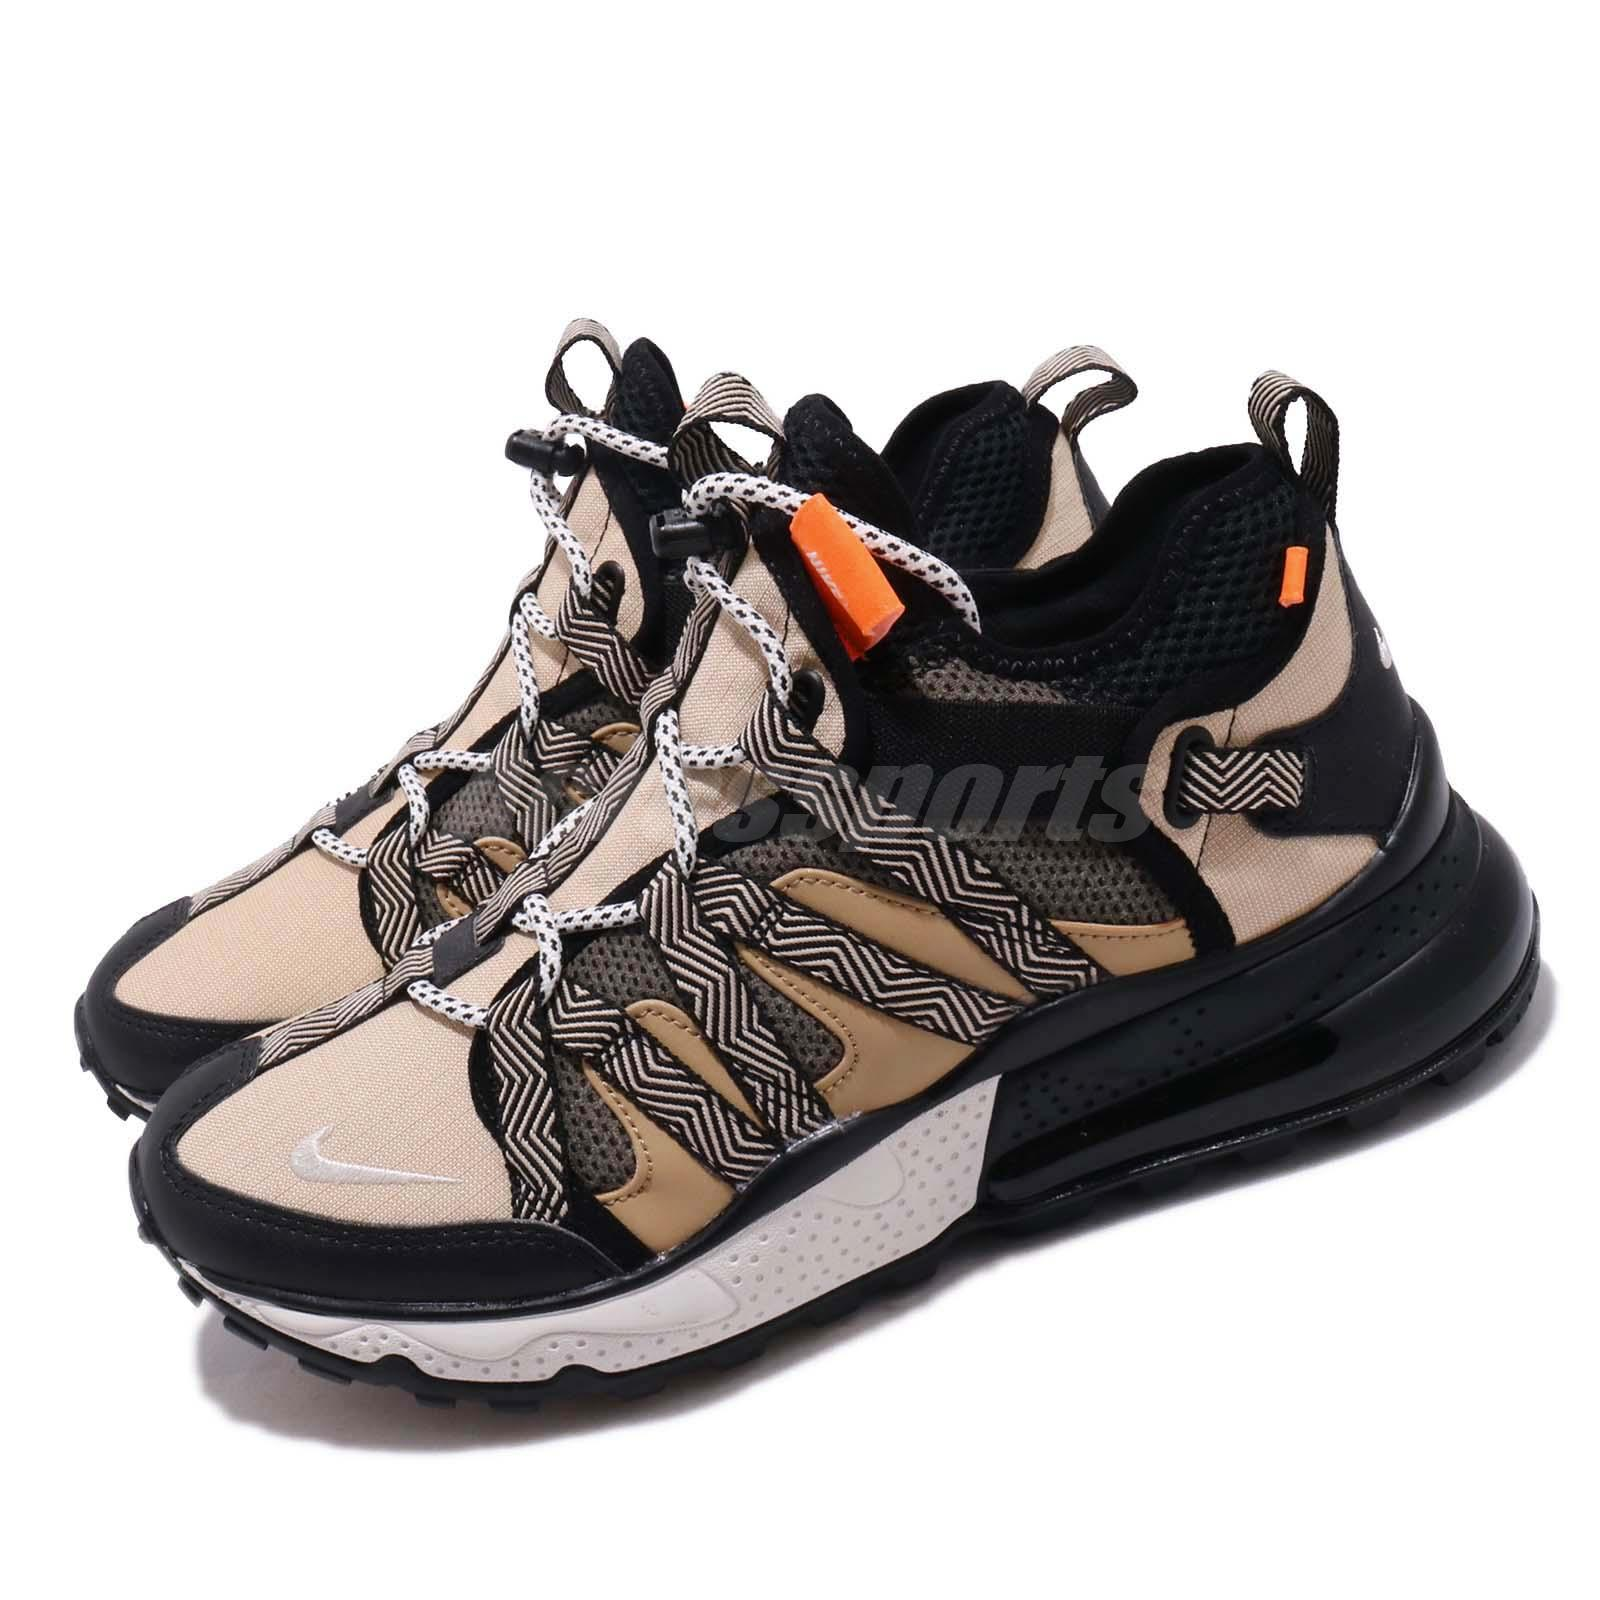 best website 6914a 14bbc Details about Nike Air Max 270 BOWFIN Desert Cone Black Men Outdoors Trail  Shoes AJ7200-001